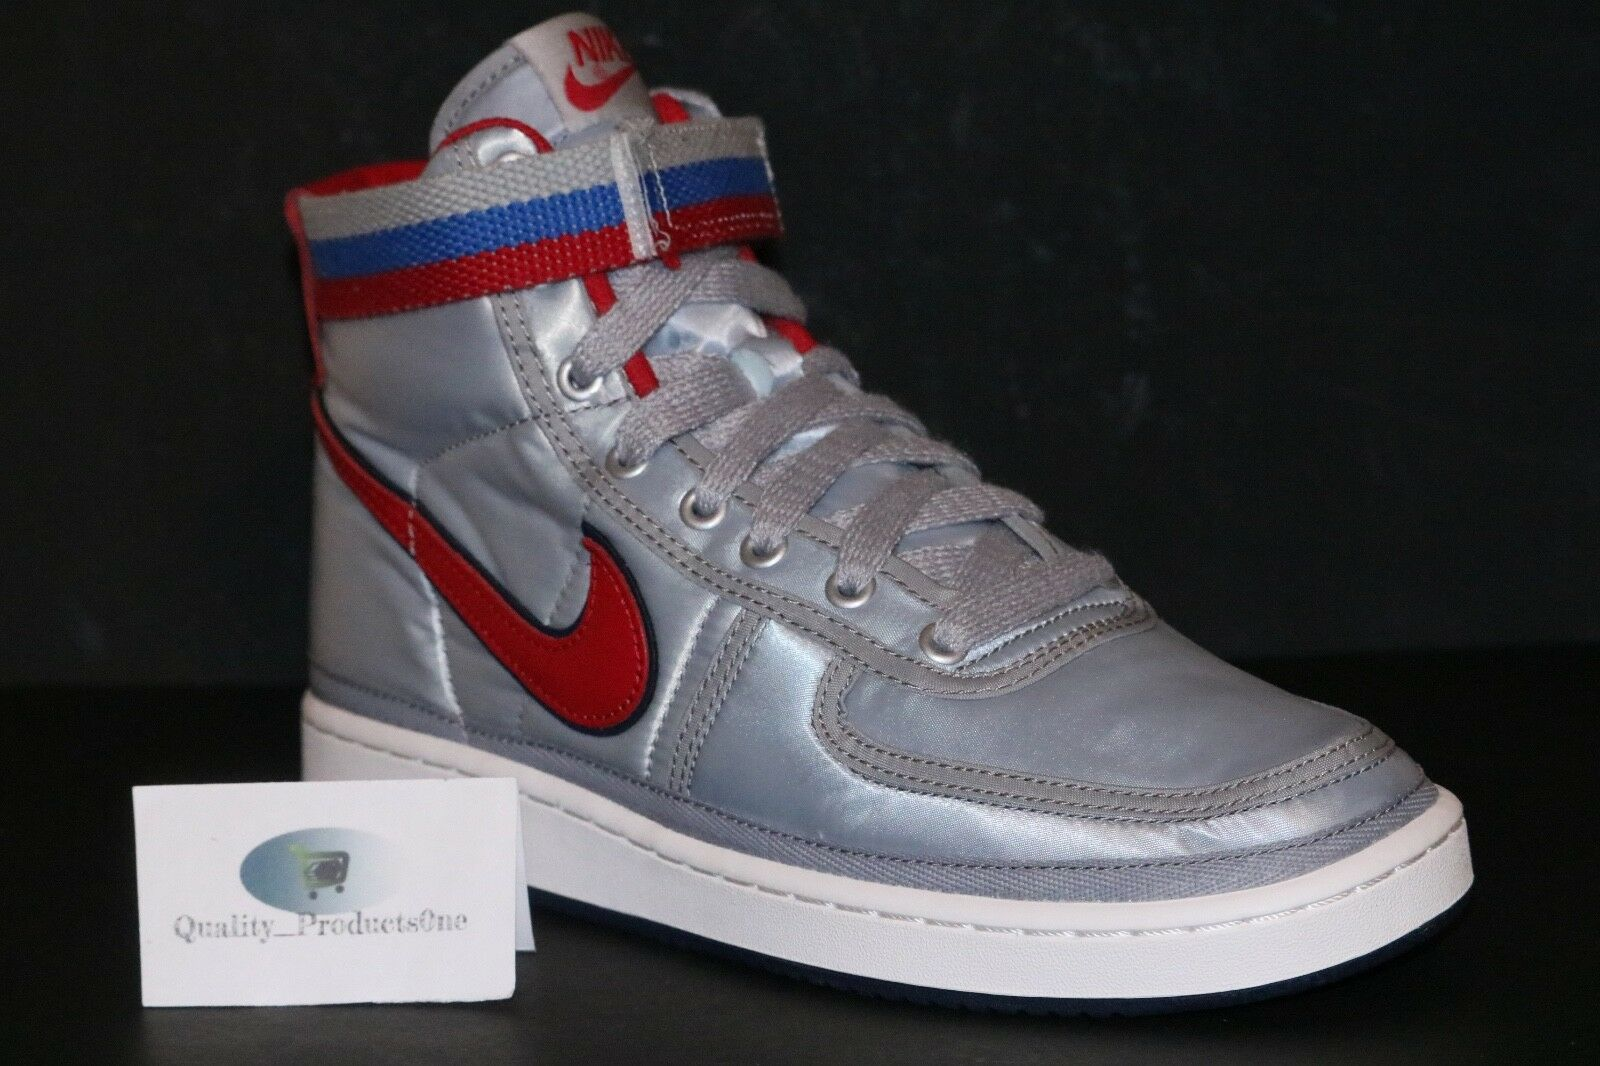 Nike Vandal High Supreme QS Metallic Silver University Red AH8652 001 Sz 8-10